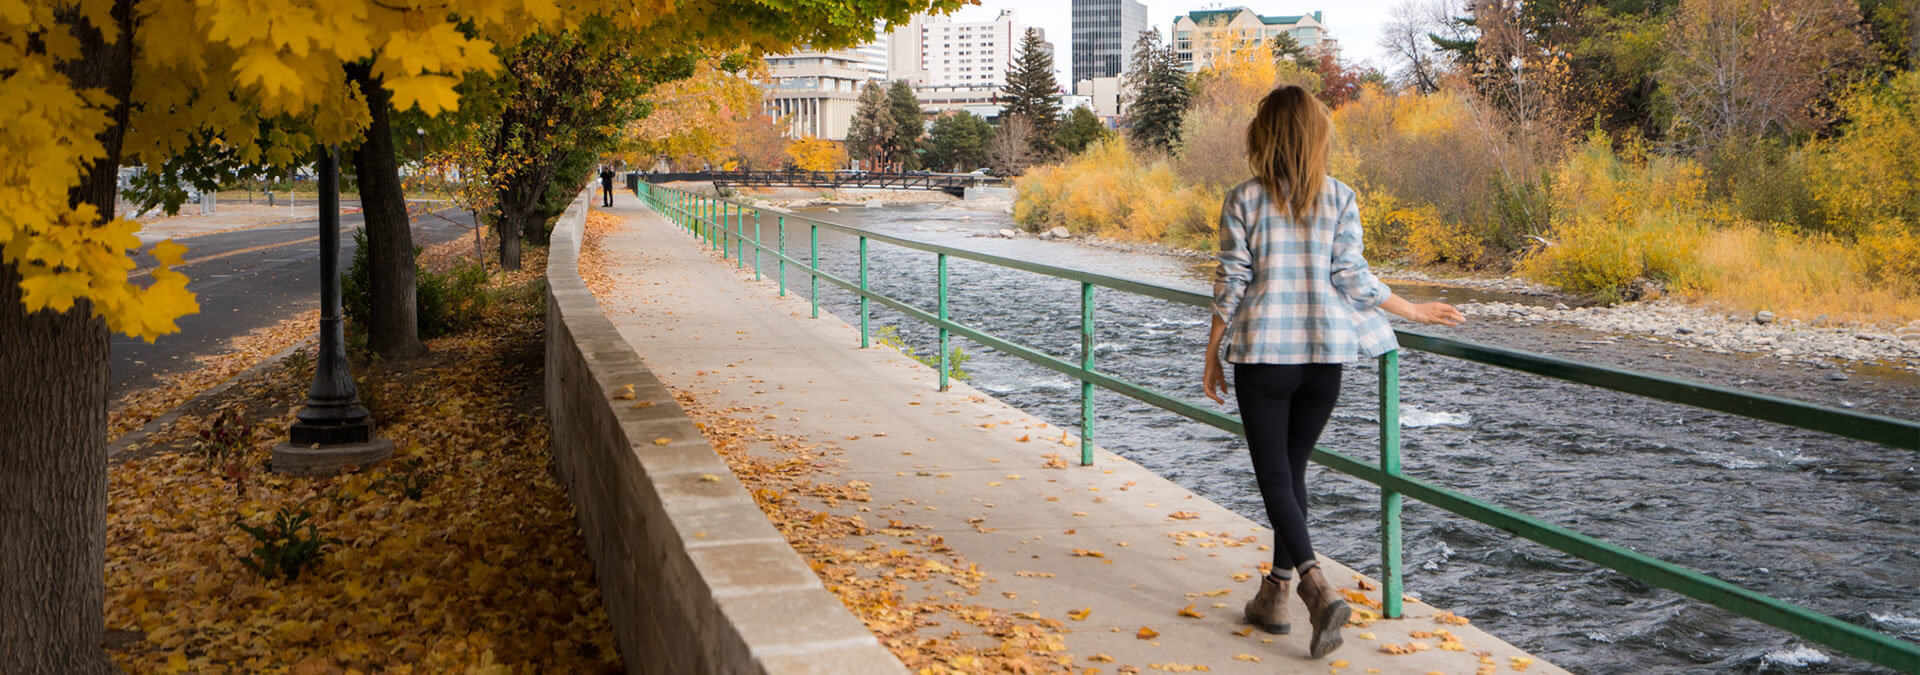 Fall colors and the Truckee River